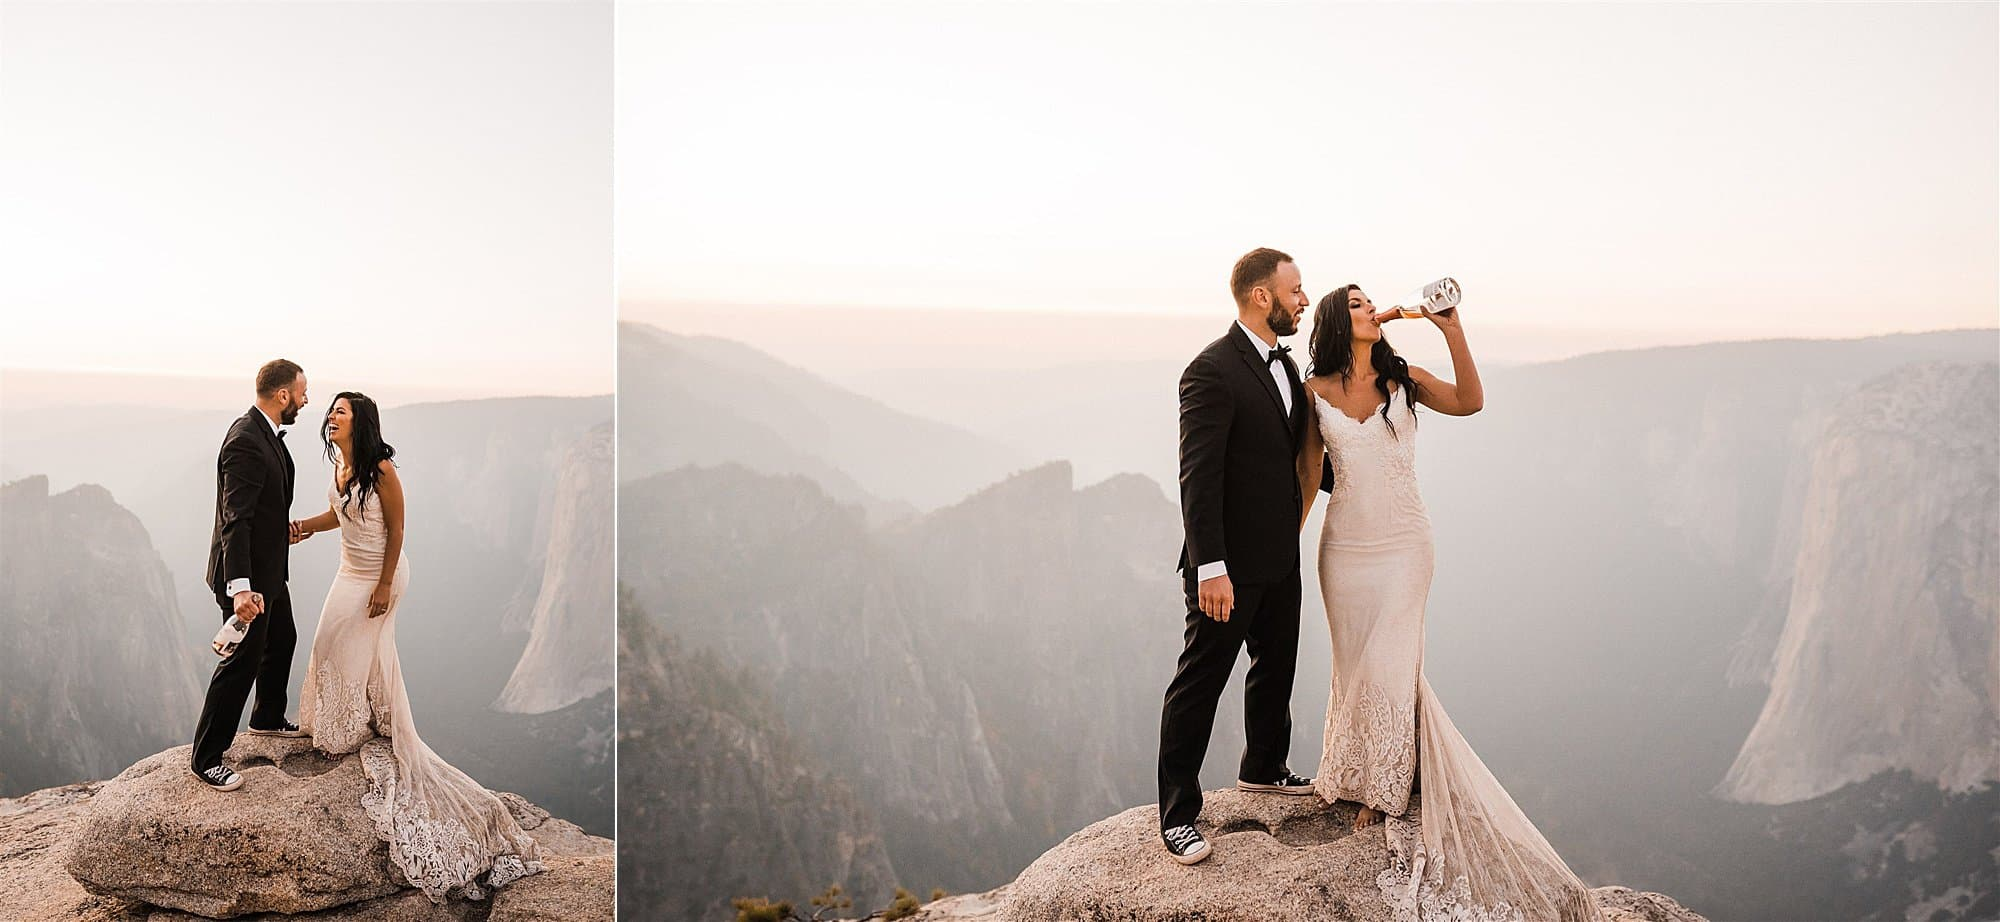 Taft_Point_Elopement_The_Foxes_Photography_0019.jpg